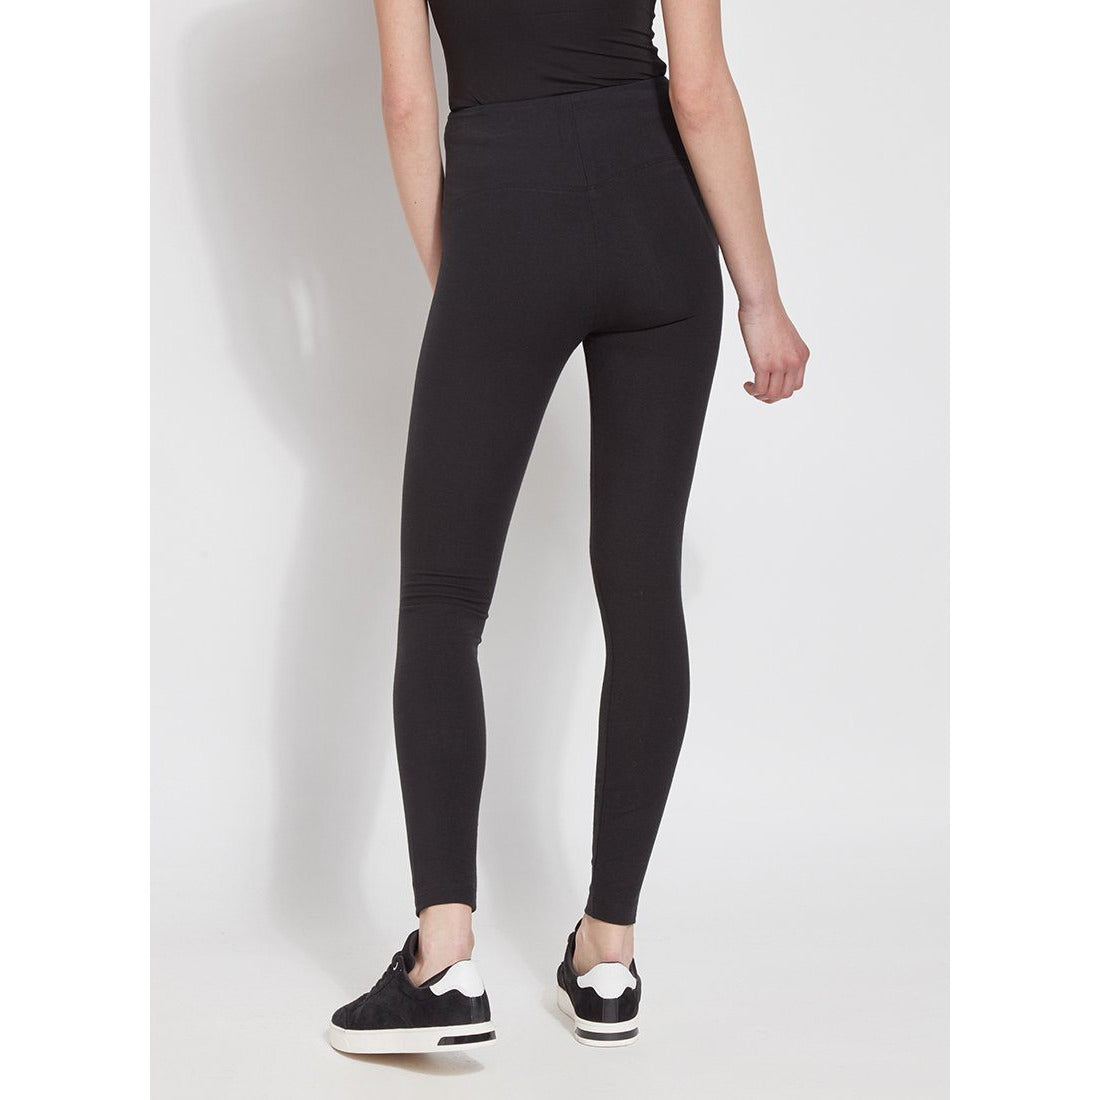 Lysse Ankle Shaper Legging Black - Fashion Crossroads Inc